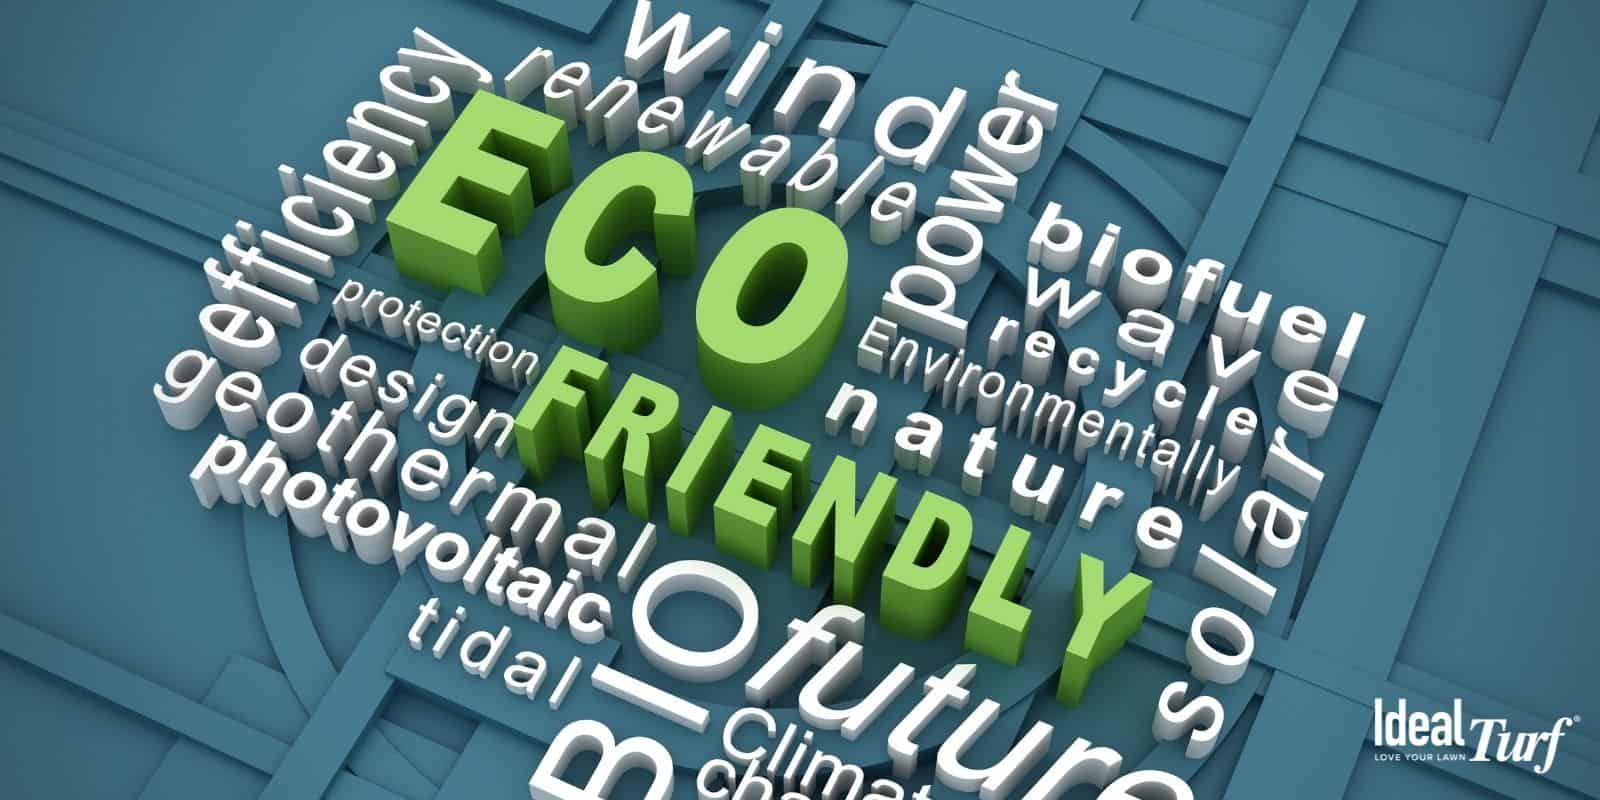 Word cloud of Eco-Friendly terms